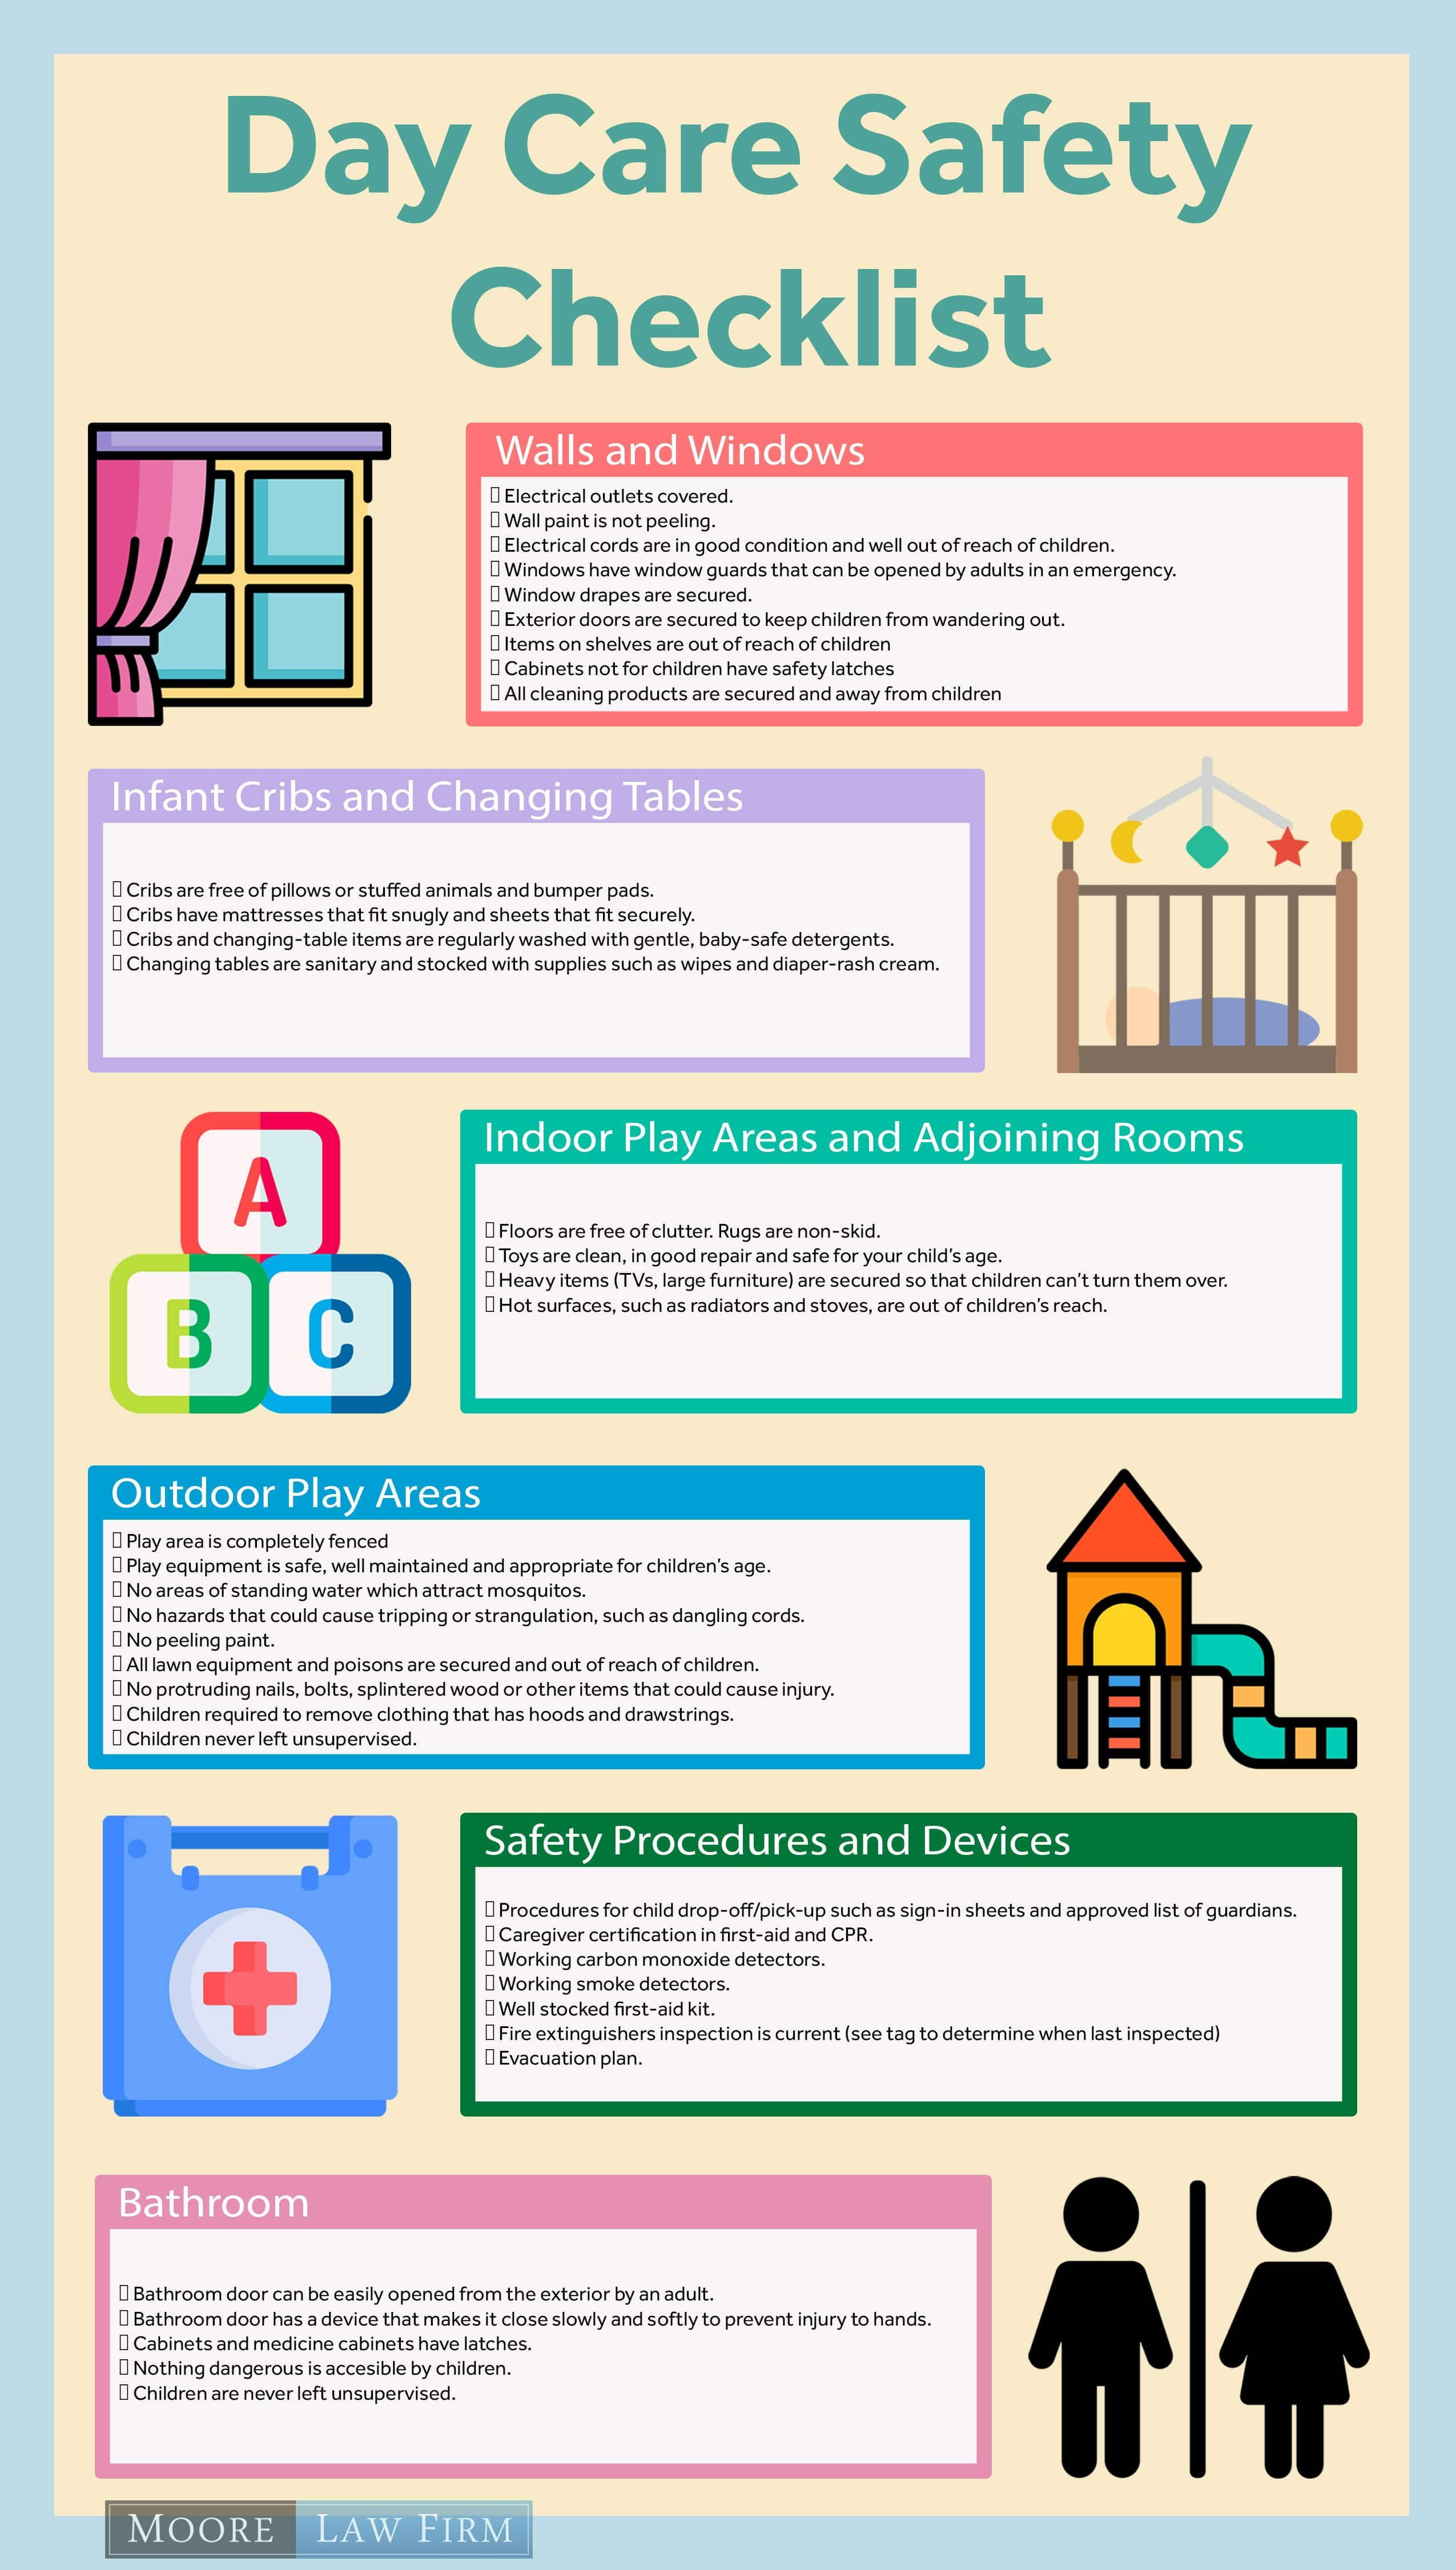 Day Care Safety Checklist Day Care Injury Lawyer Moore Law Firm